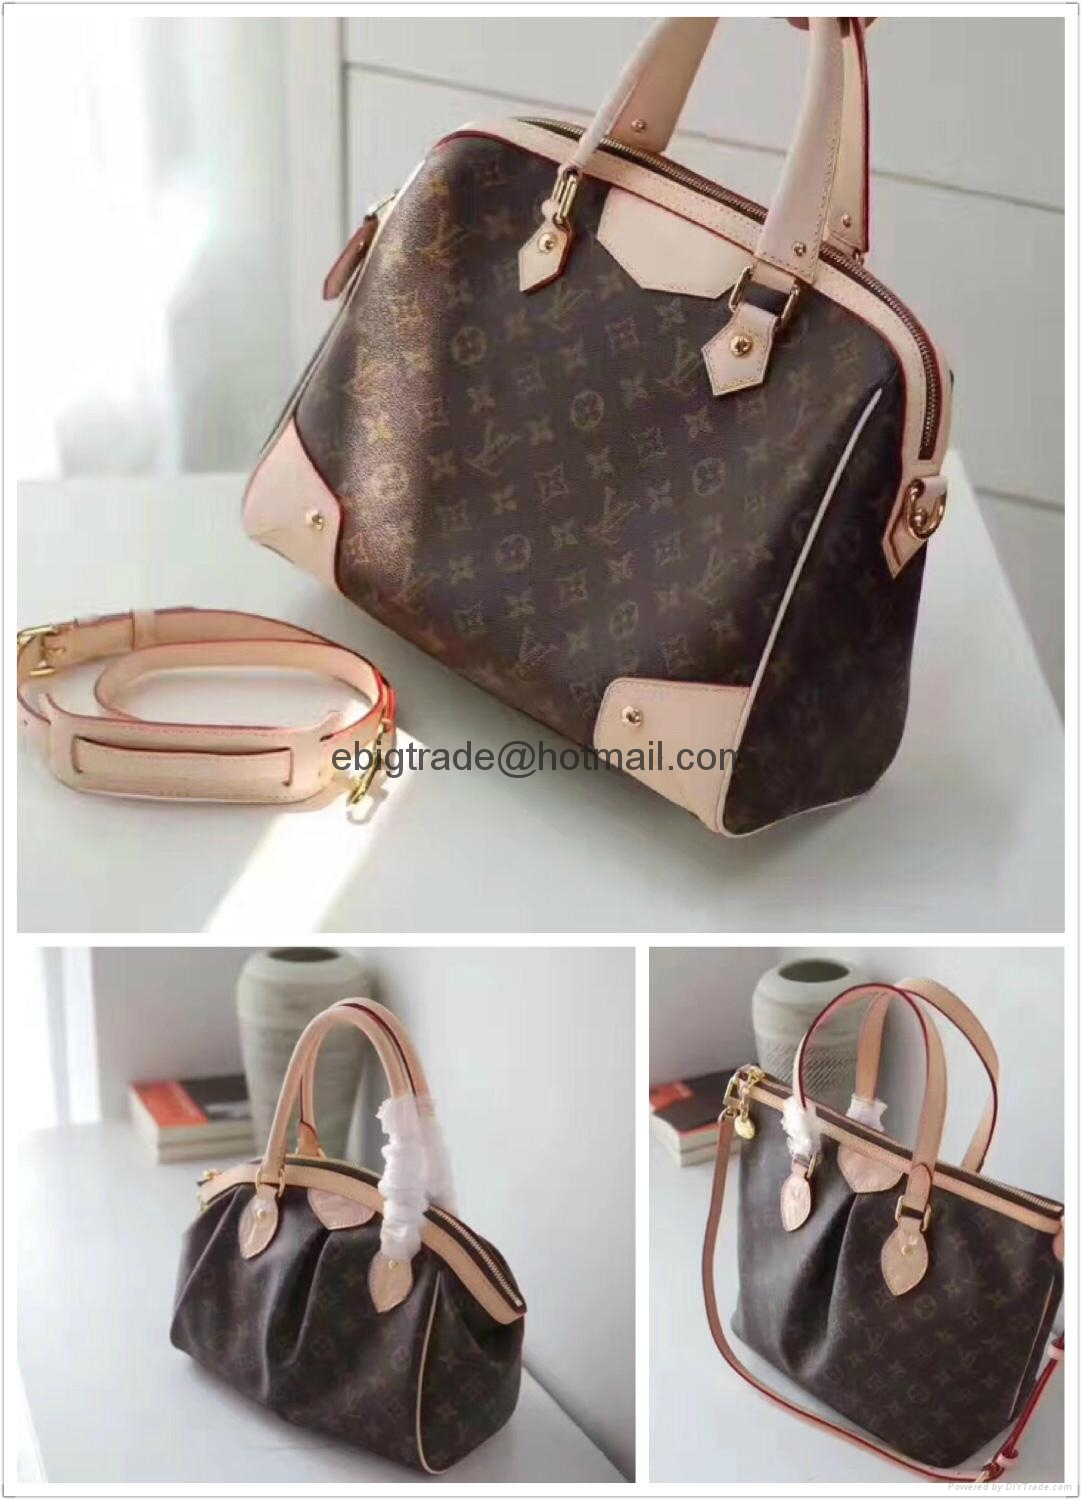 Cheap LV bags